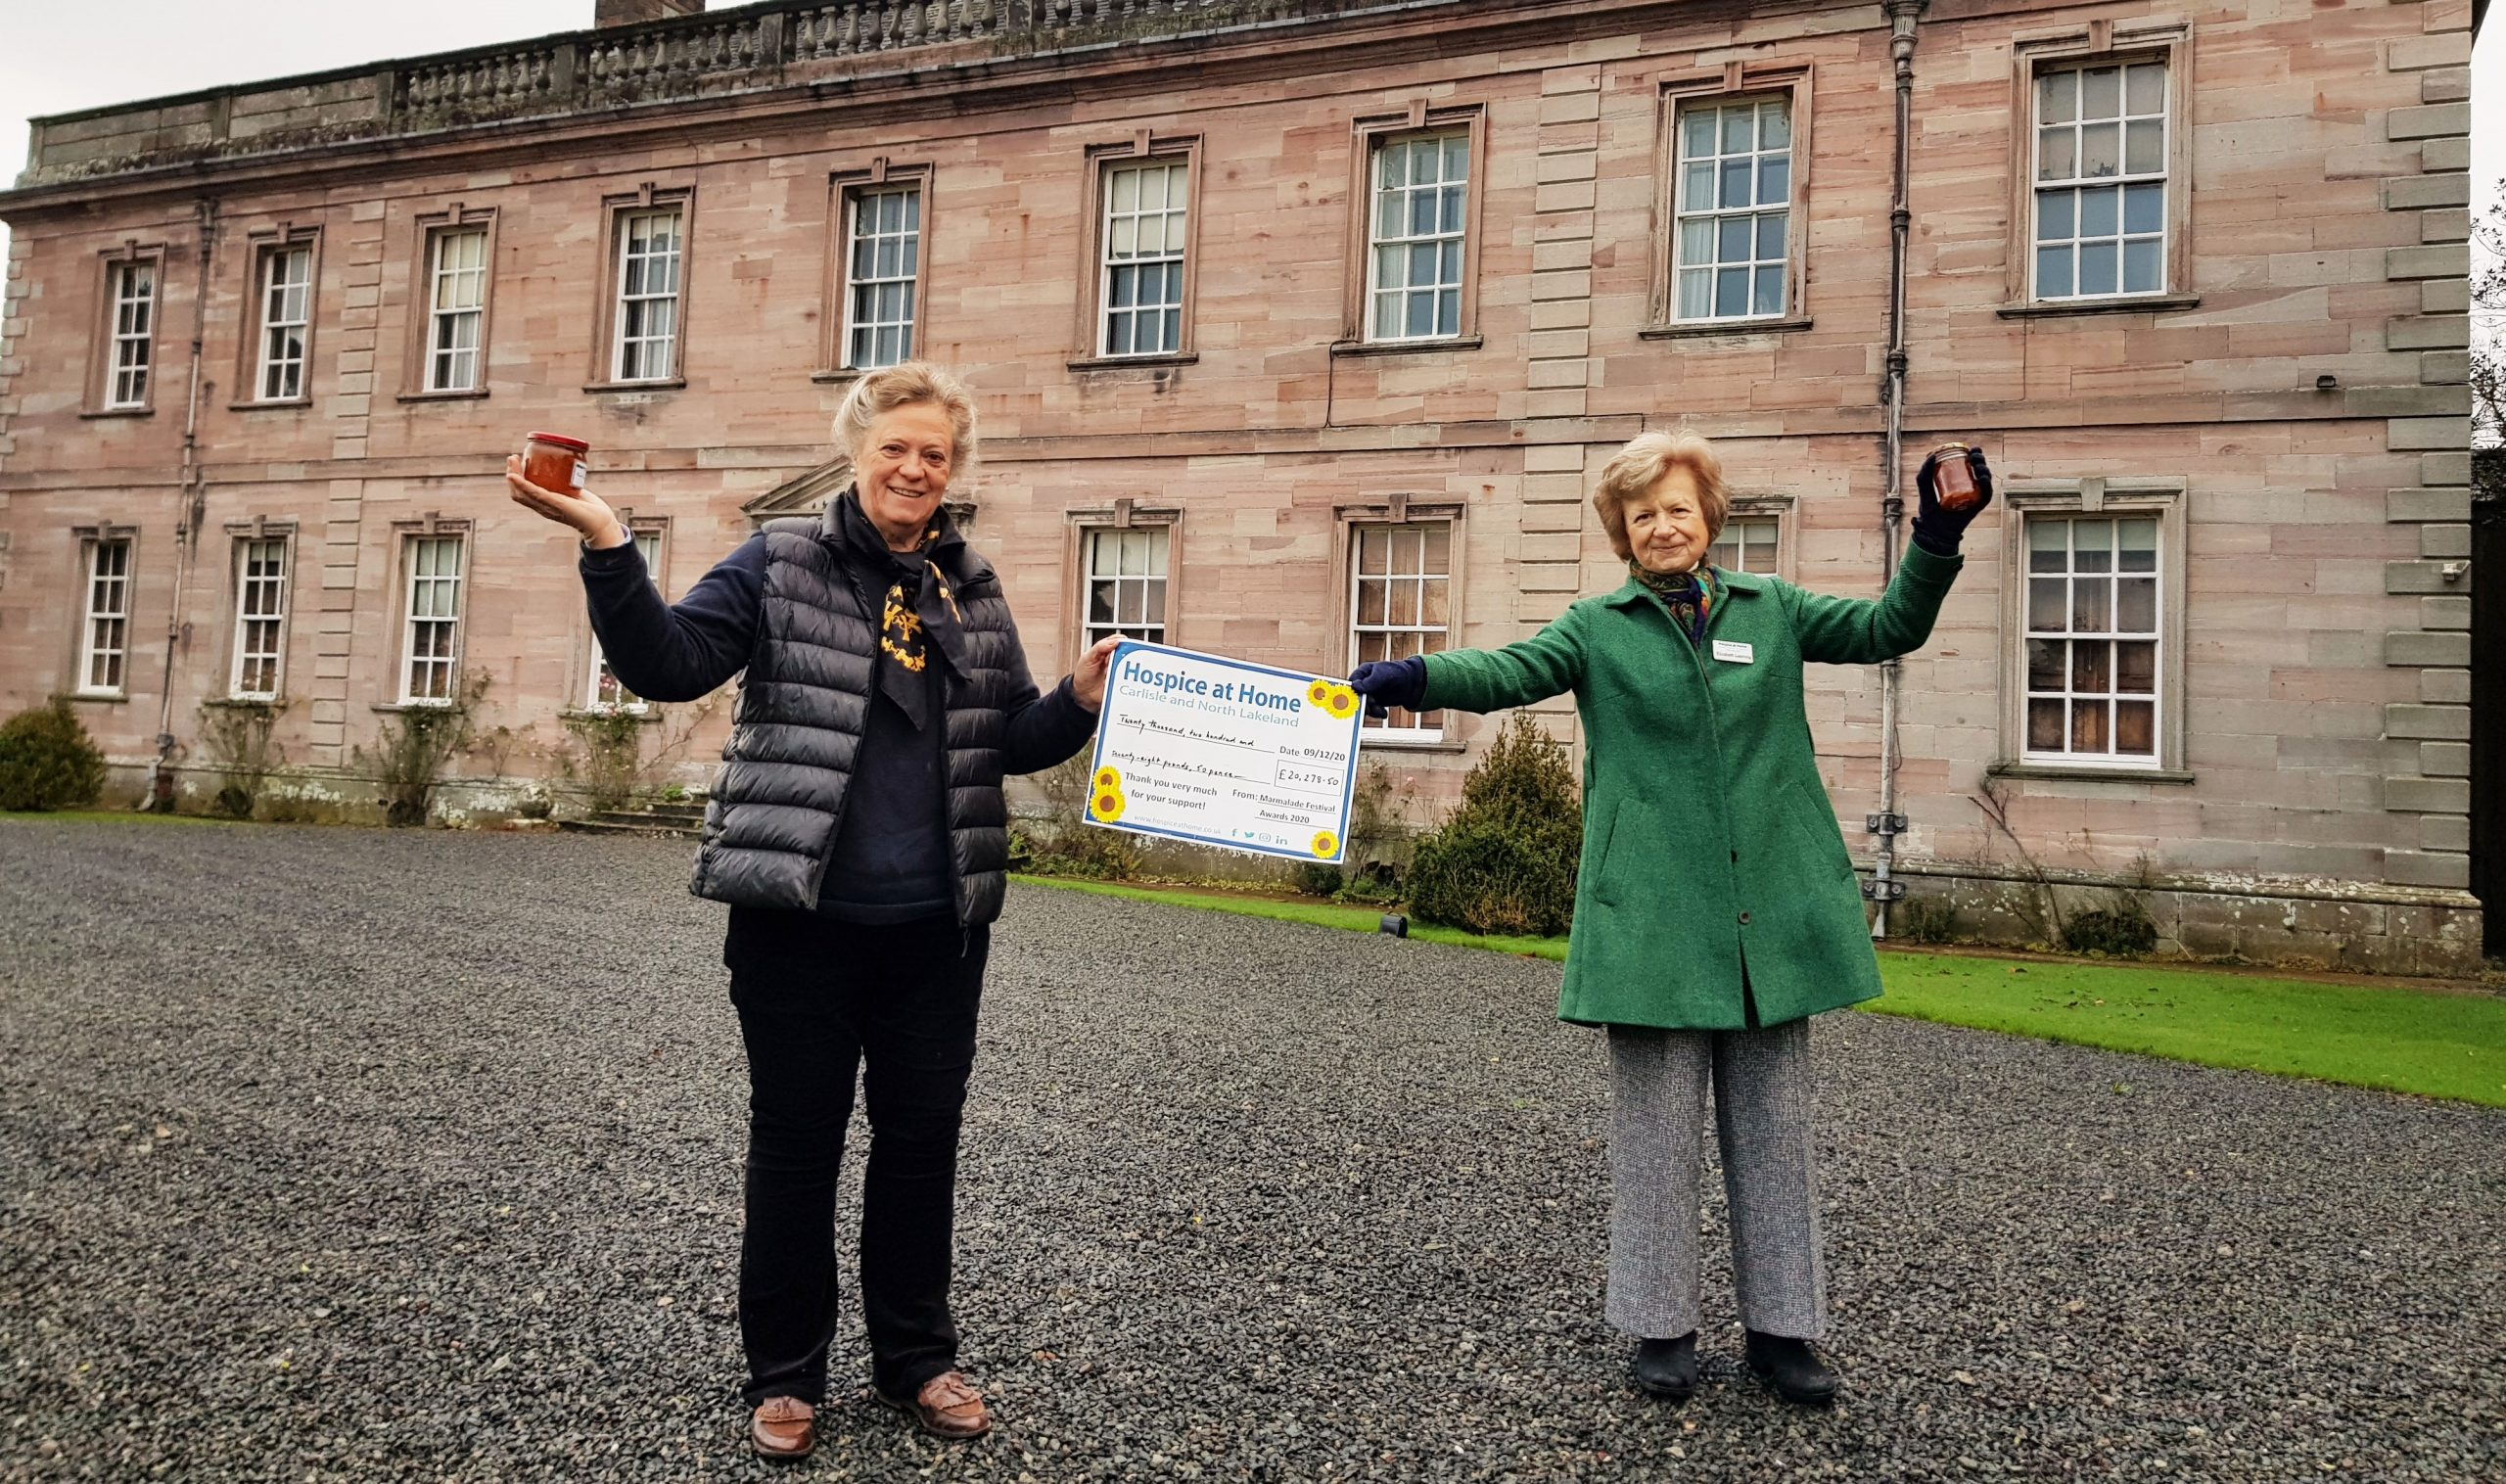 over £120 000 presented to Hospice at Home